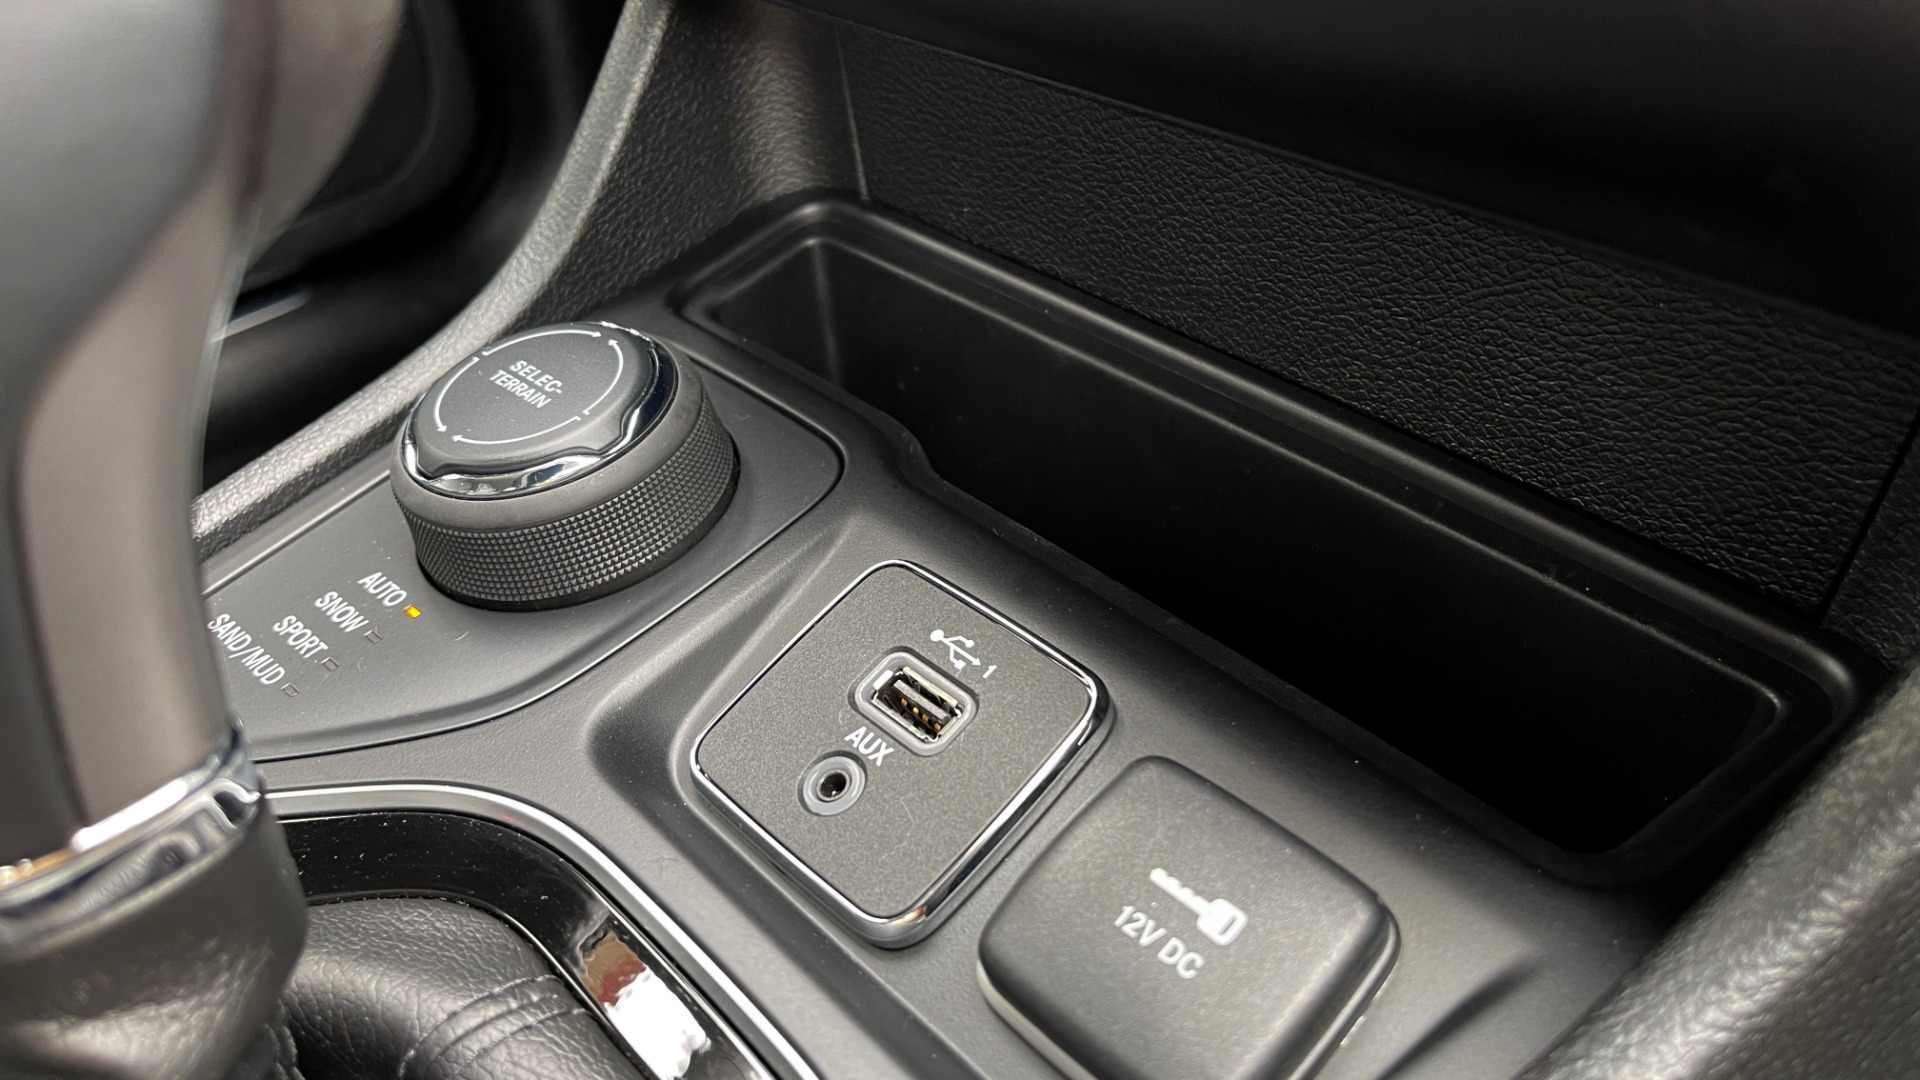 Used 2019 Jeep CHEROKEE LIMITED 4X4 / KEYLESS-GO / BLIND SPOT AND CROSS PATH / REMOTE START / REARV for sale $26,995 at Formula Imports in Charlotte NC 28227 58